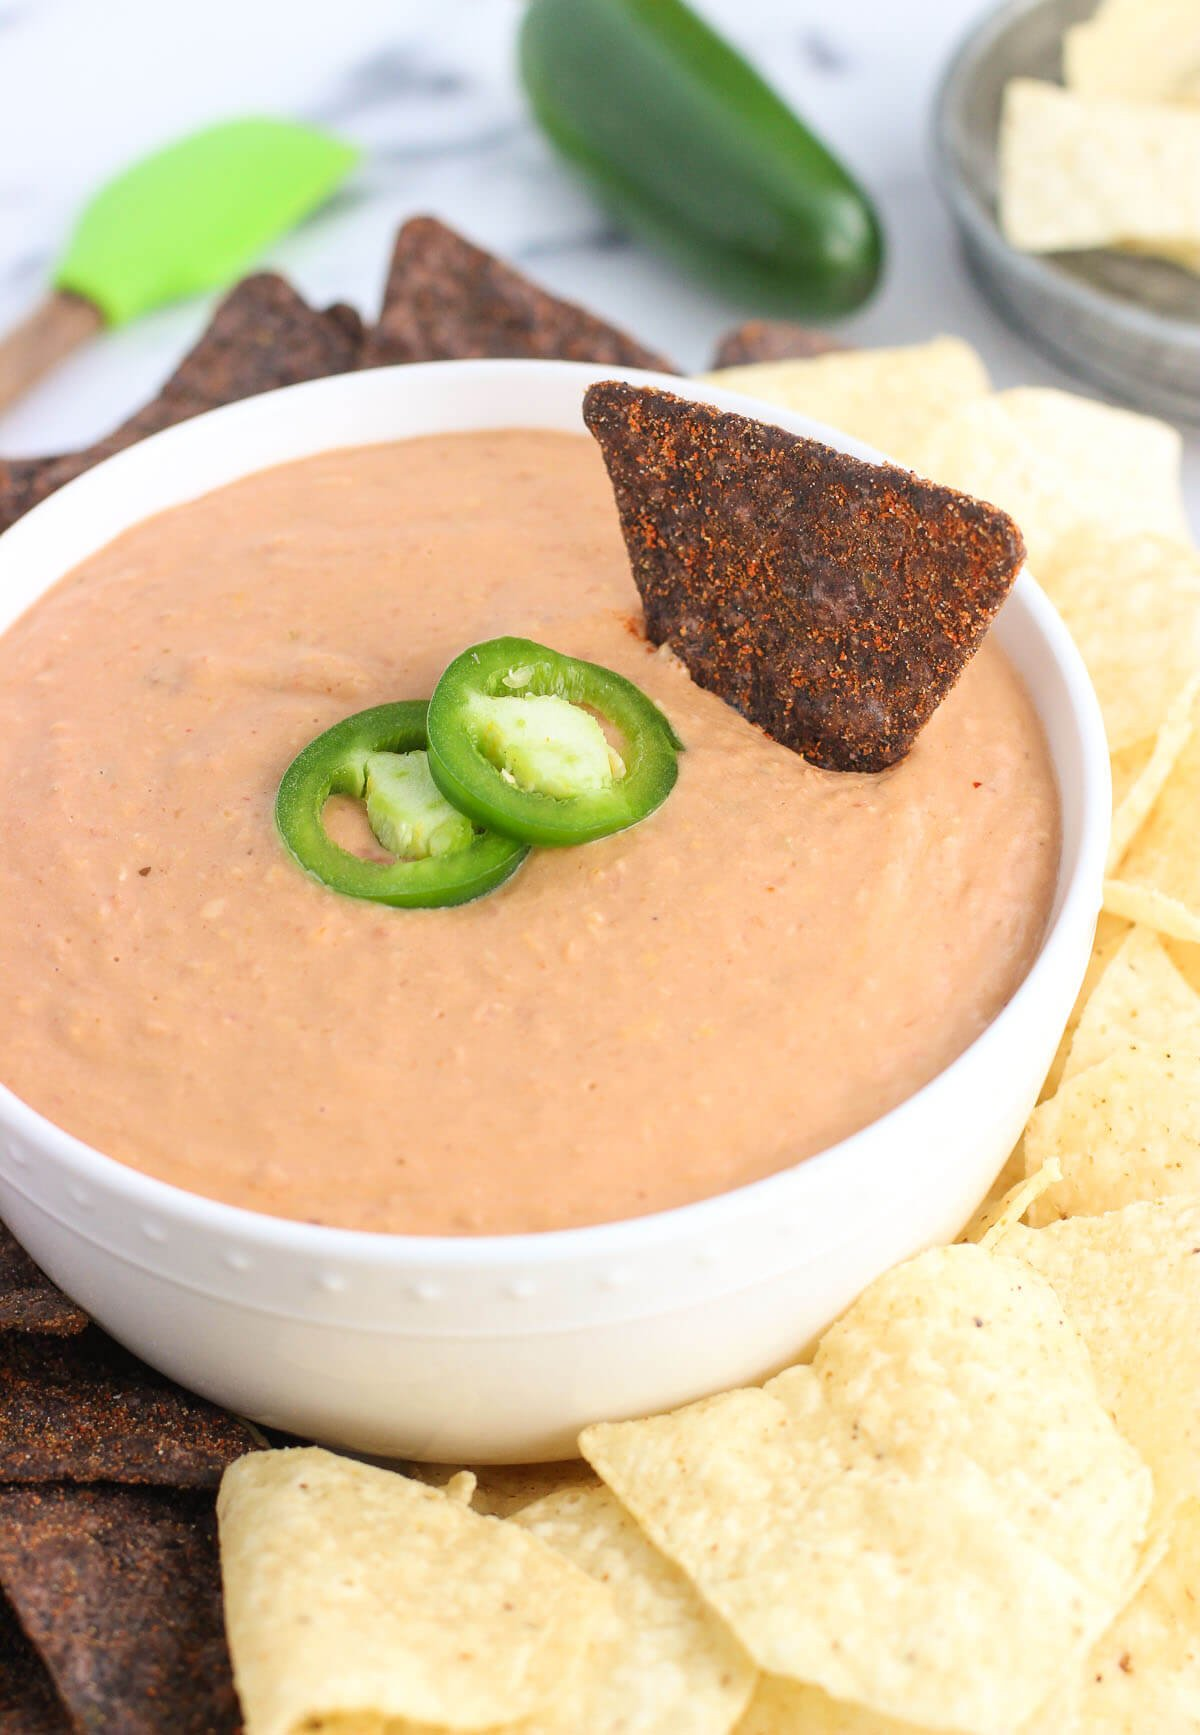 This cheesy salsa bean dip is a dip recipe perfect for entertaining! It's easy, cheesy, and just thick enough for a satisfying and customizable appetizer or snack.